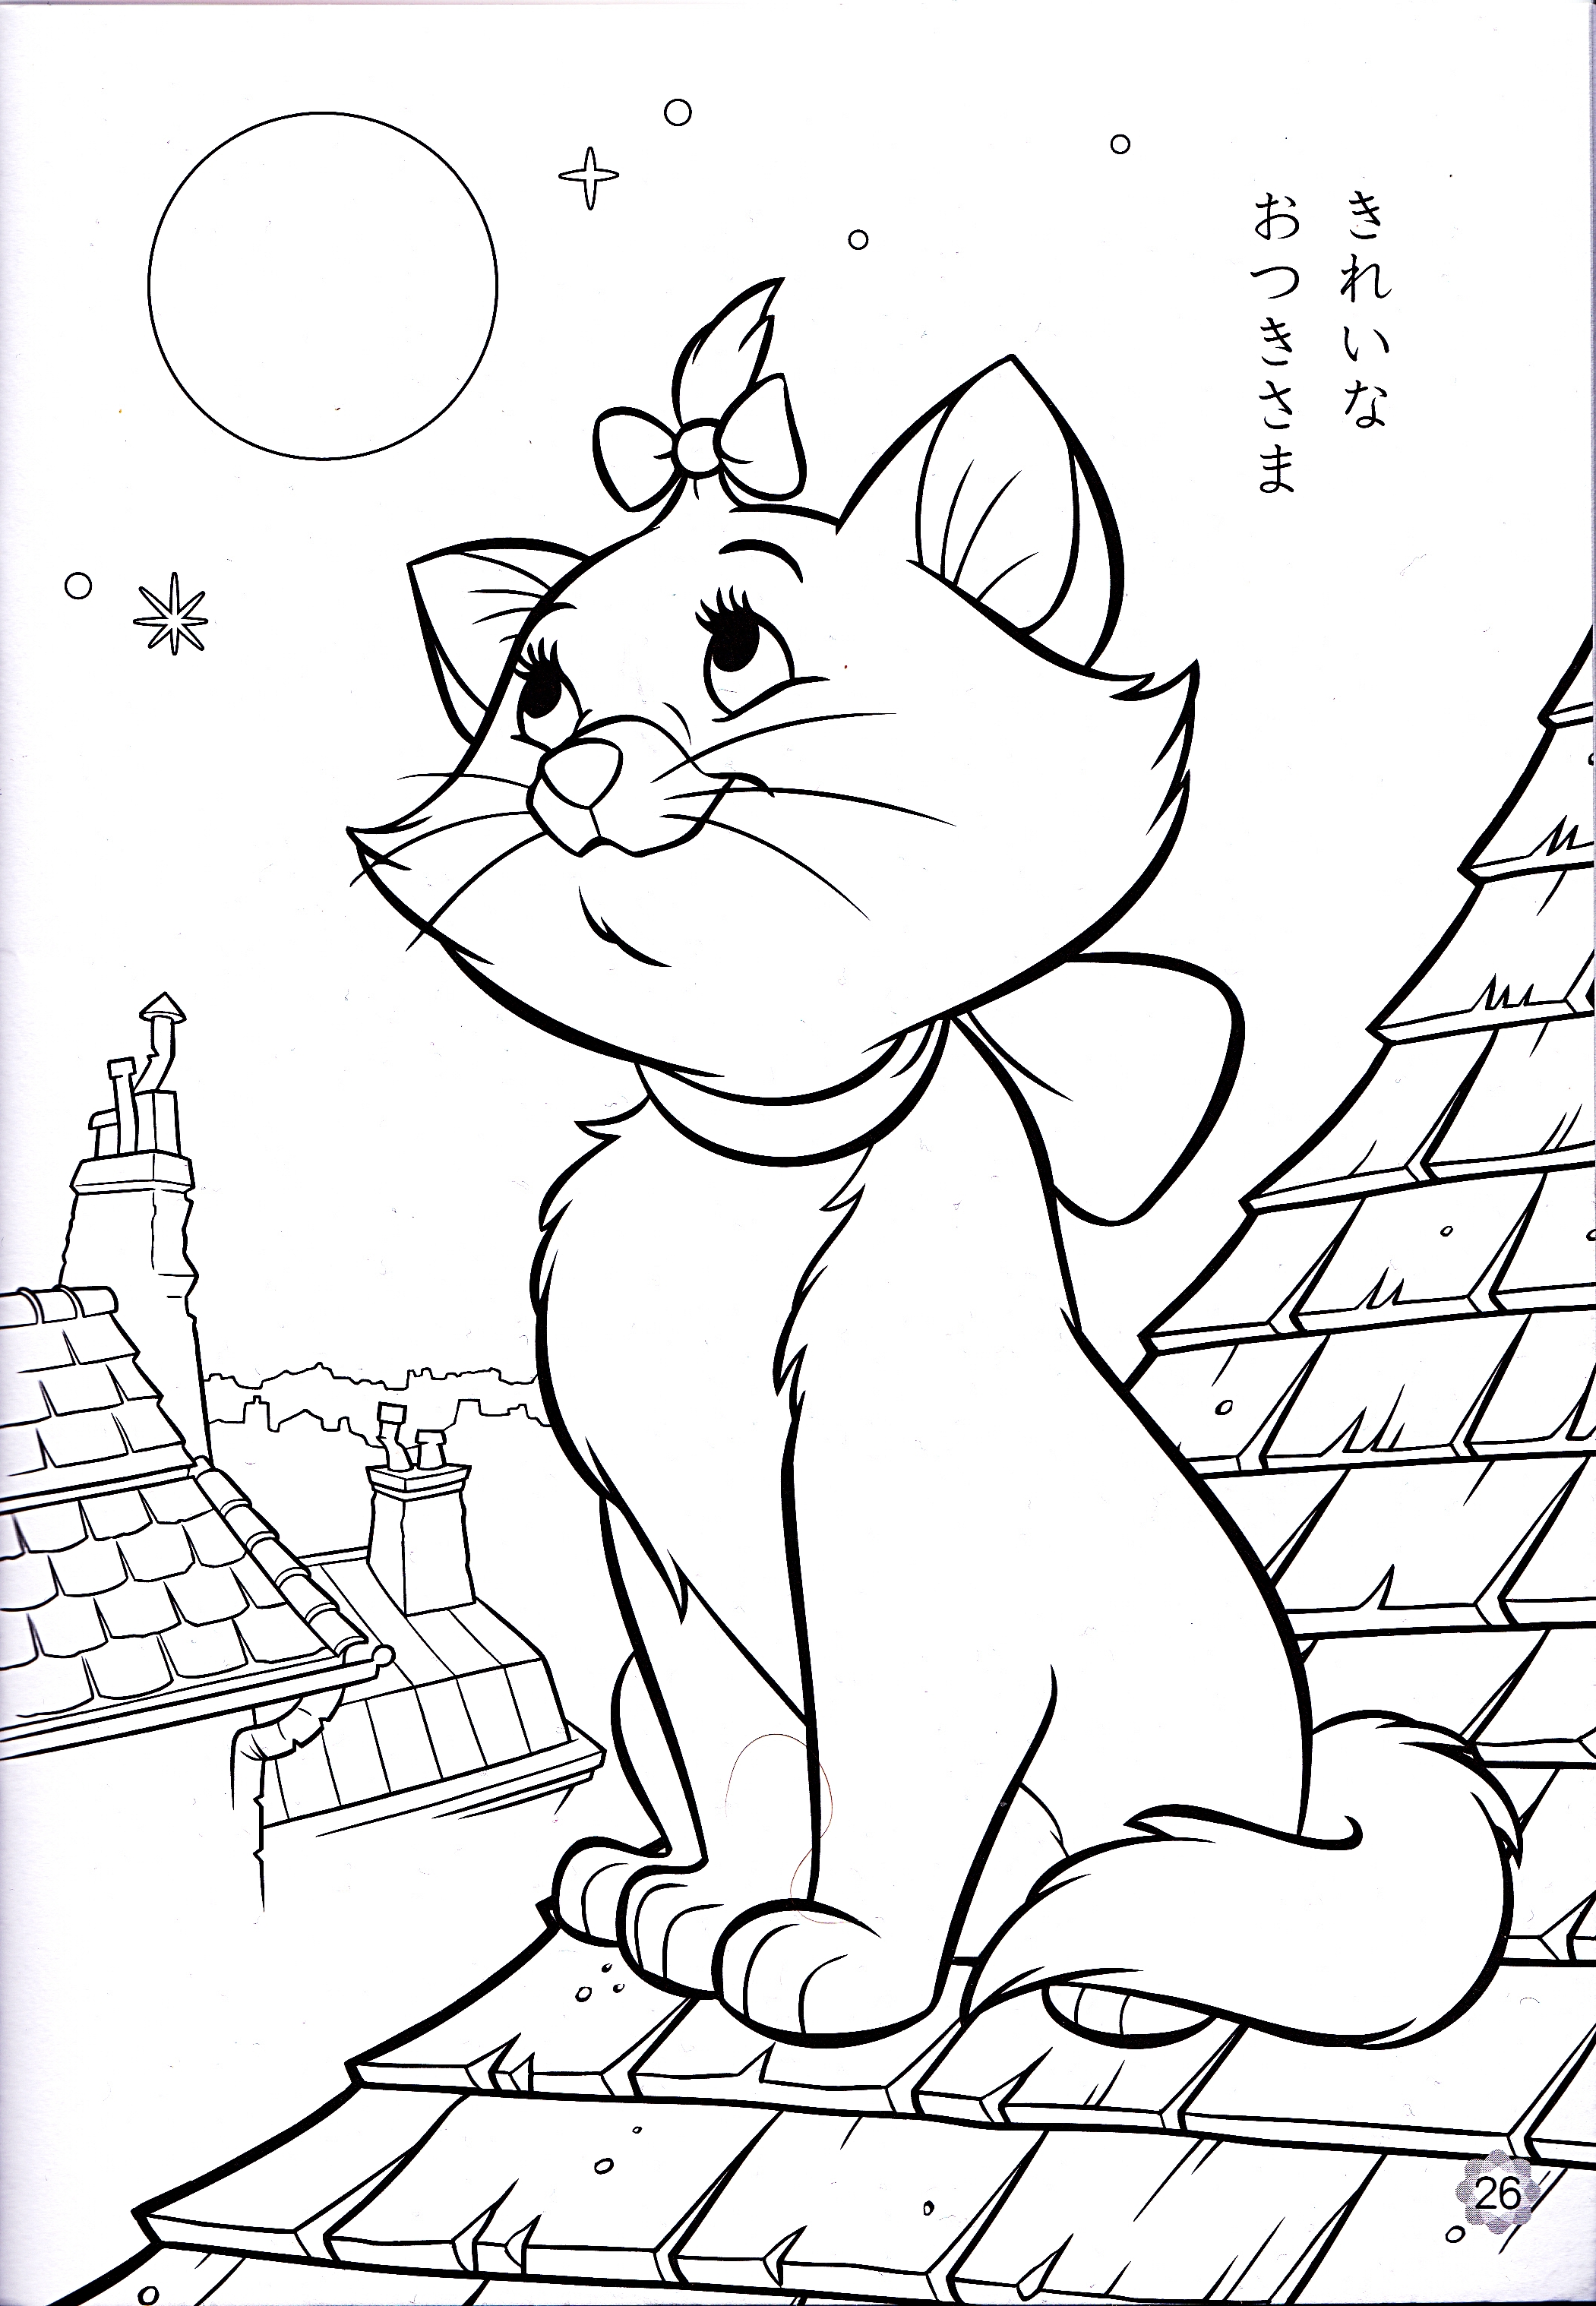 Coloring Pages Walt Disney : Walt disney coloring pages marie